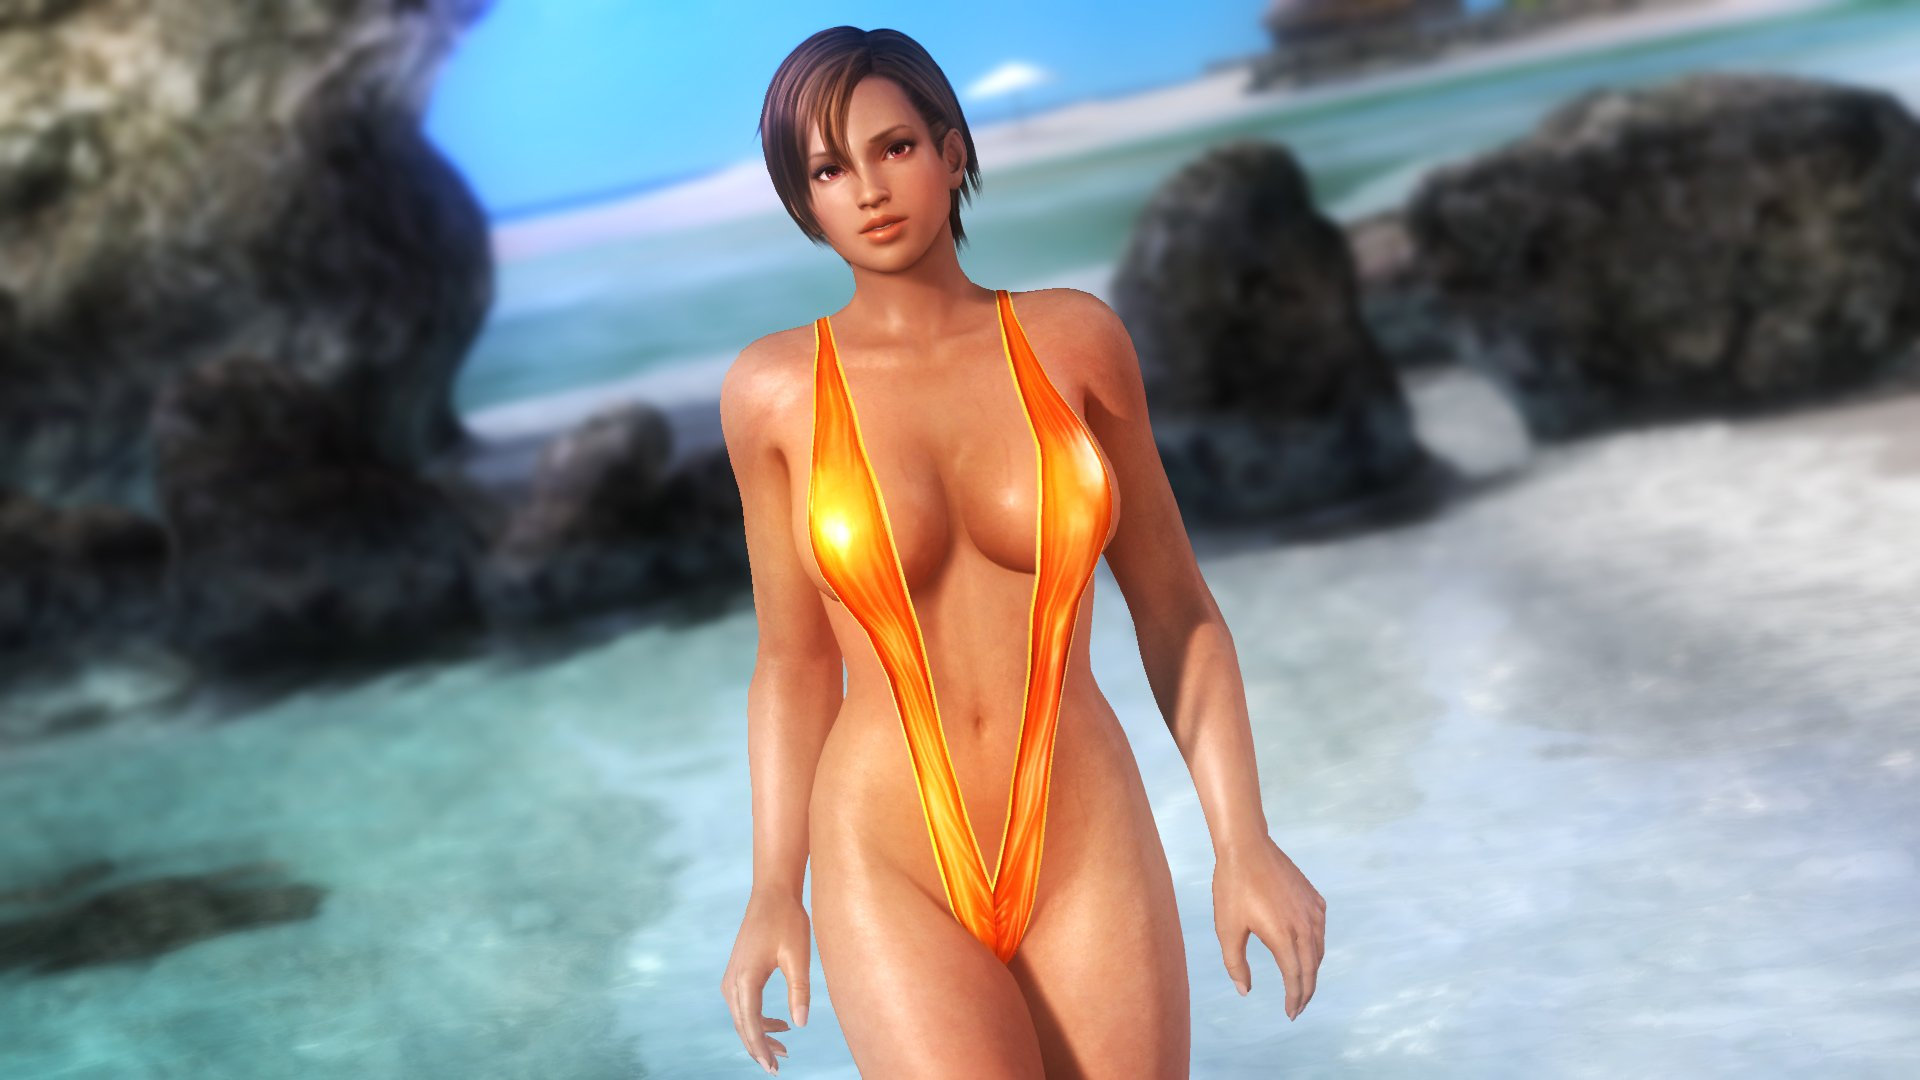 23/01/2013 - Zack Island & Swimsuit Costumes Screens - 10